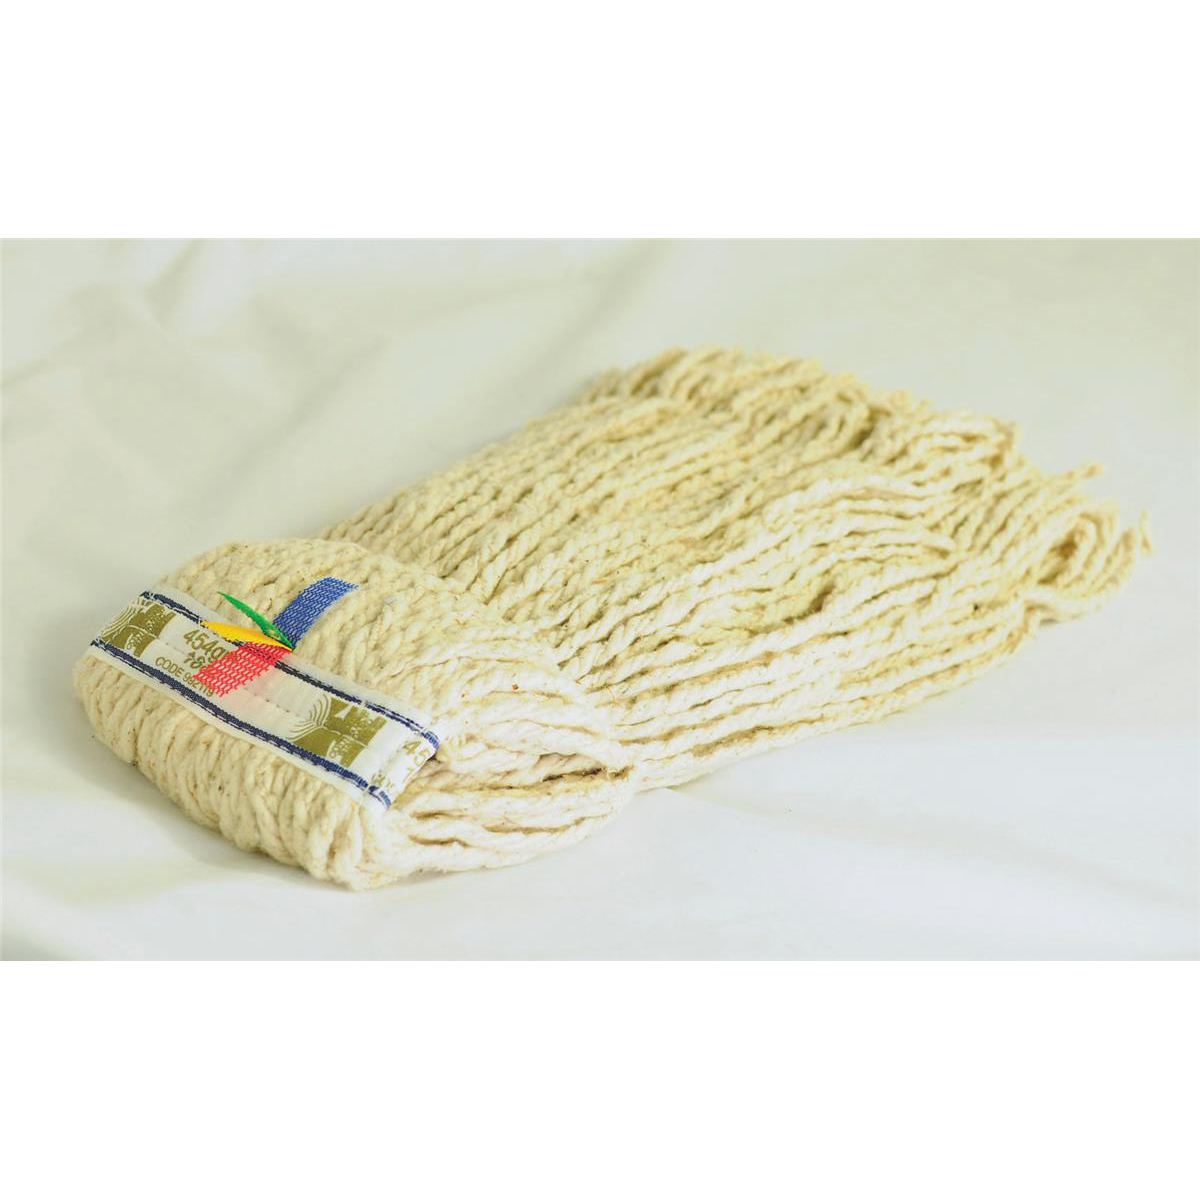 16oz/450g Multifold Hygienic Kentucky Mop Head with Assorted removable tabs